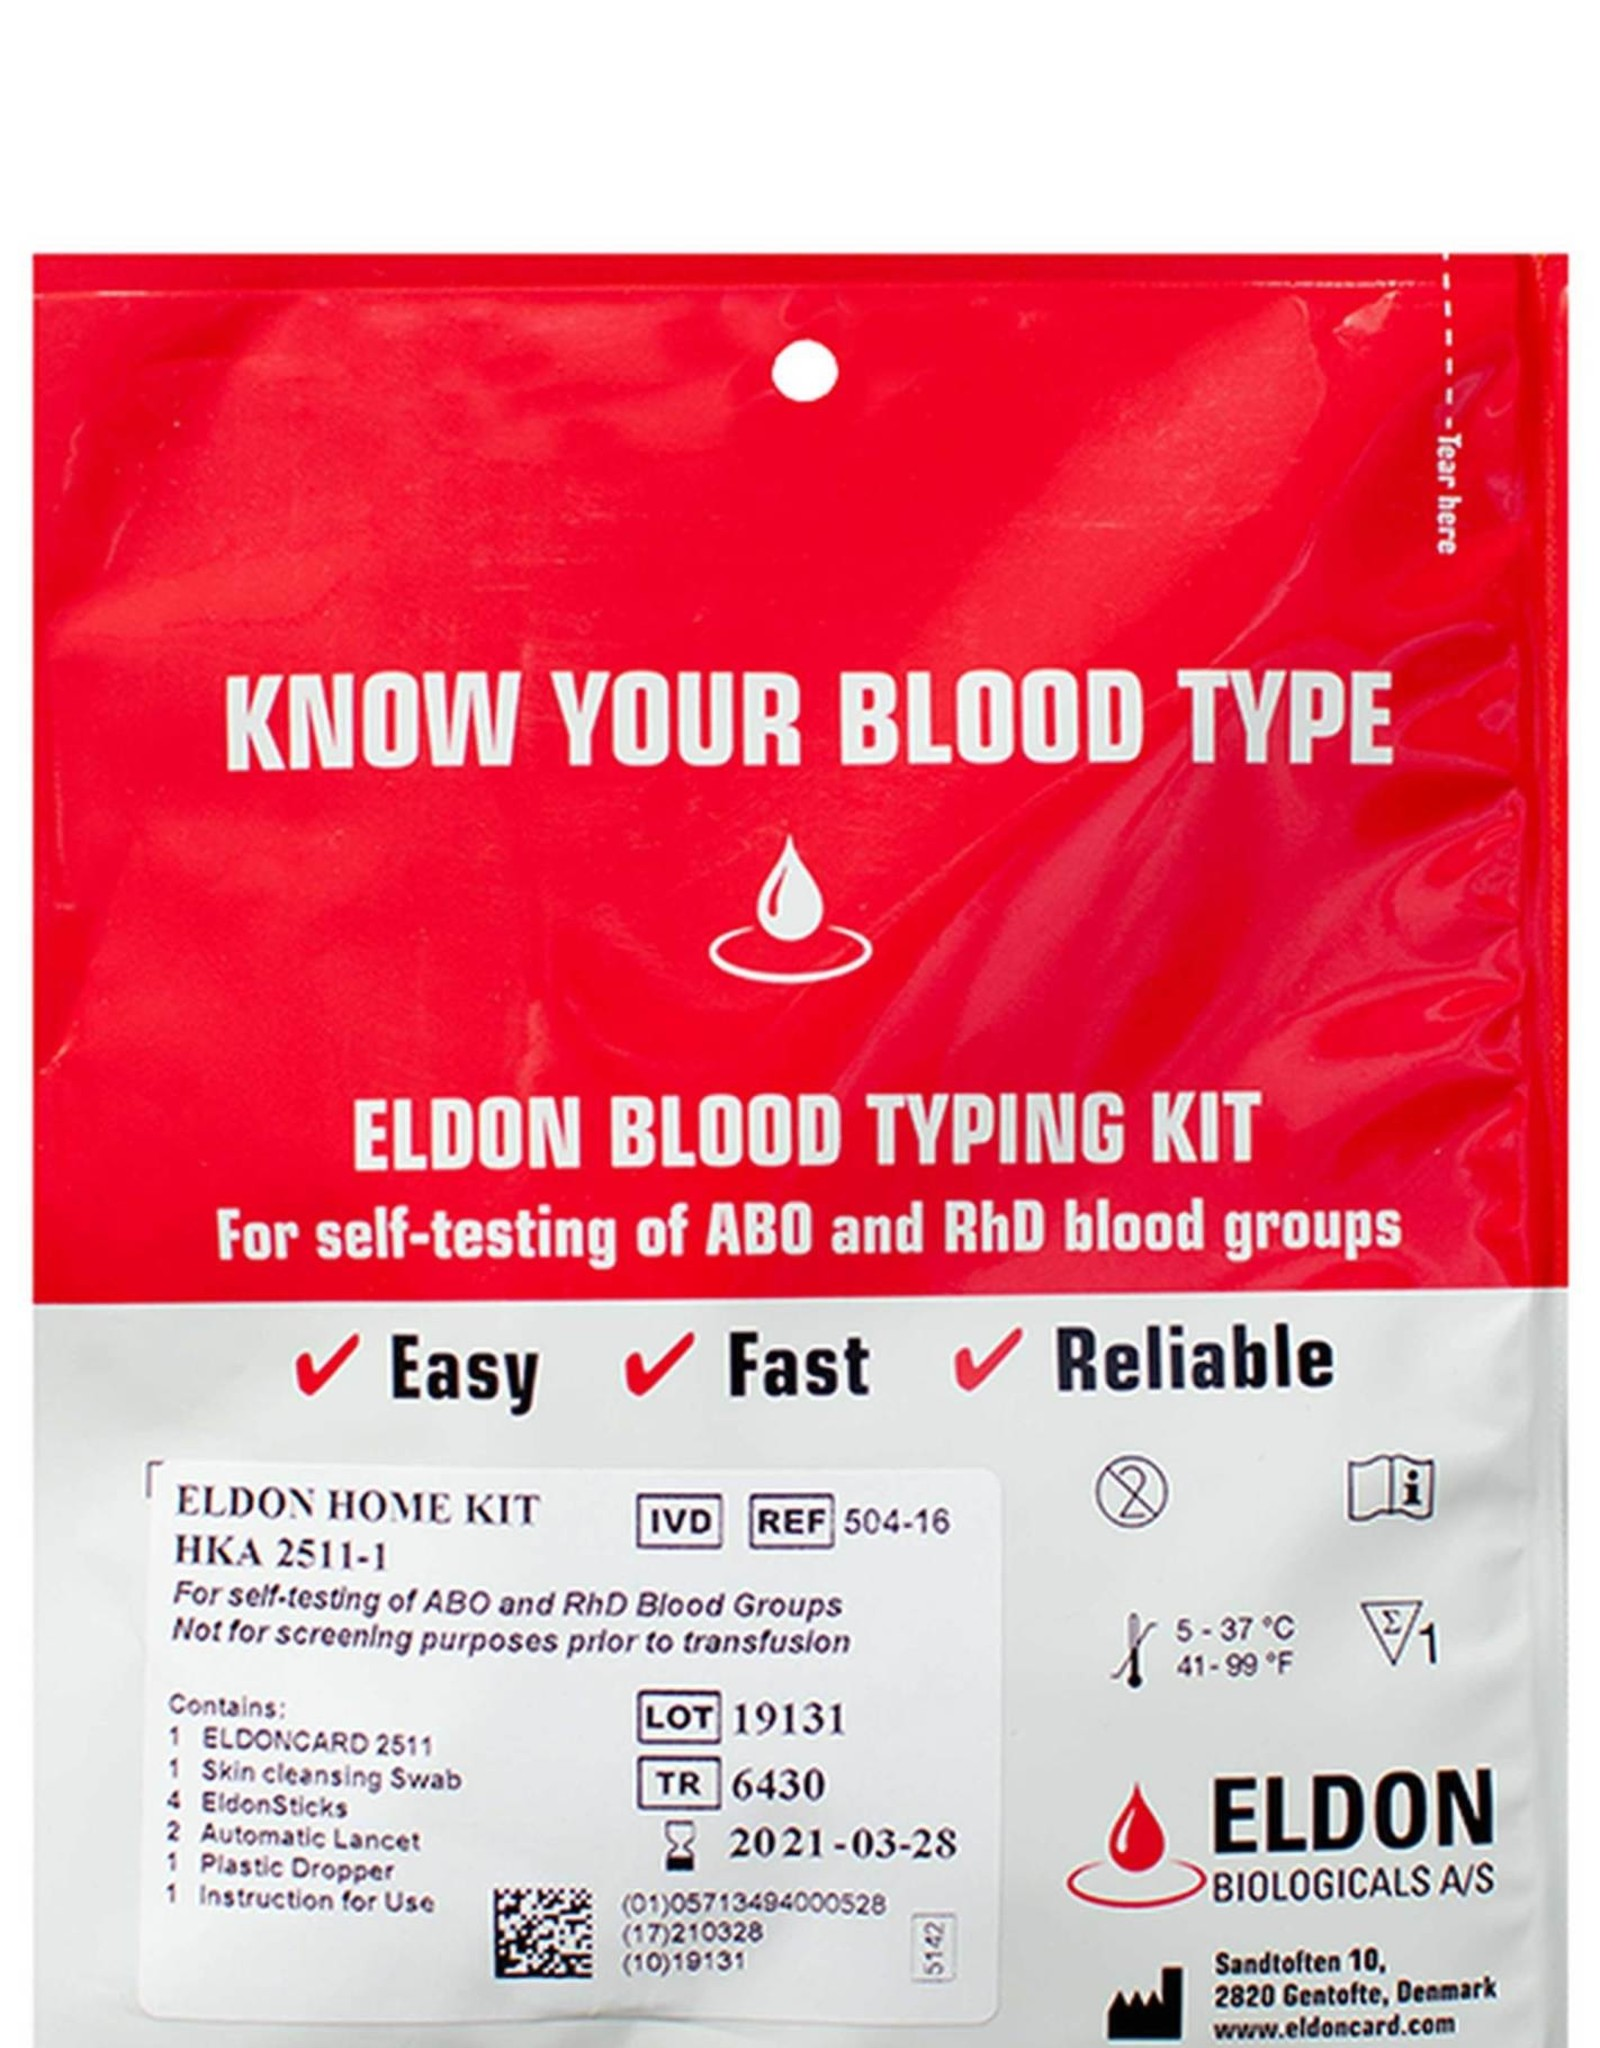 Eldon Biologicals Blood Type Test Kit